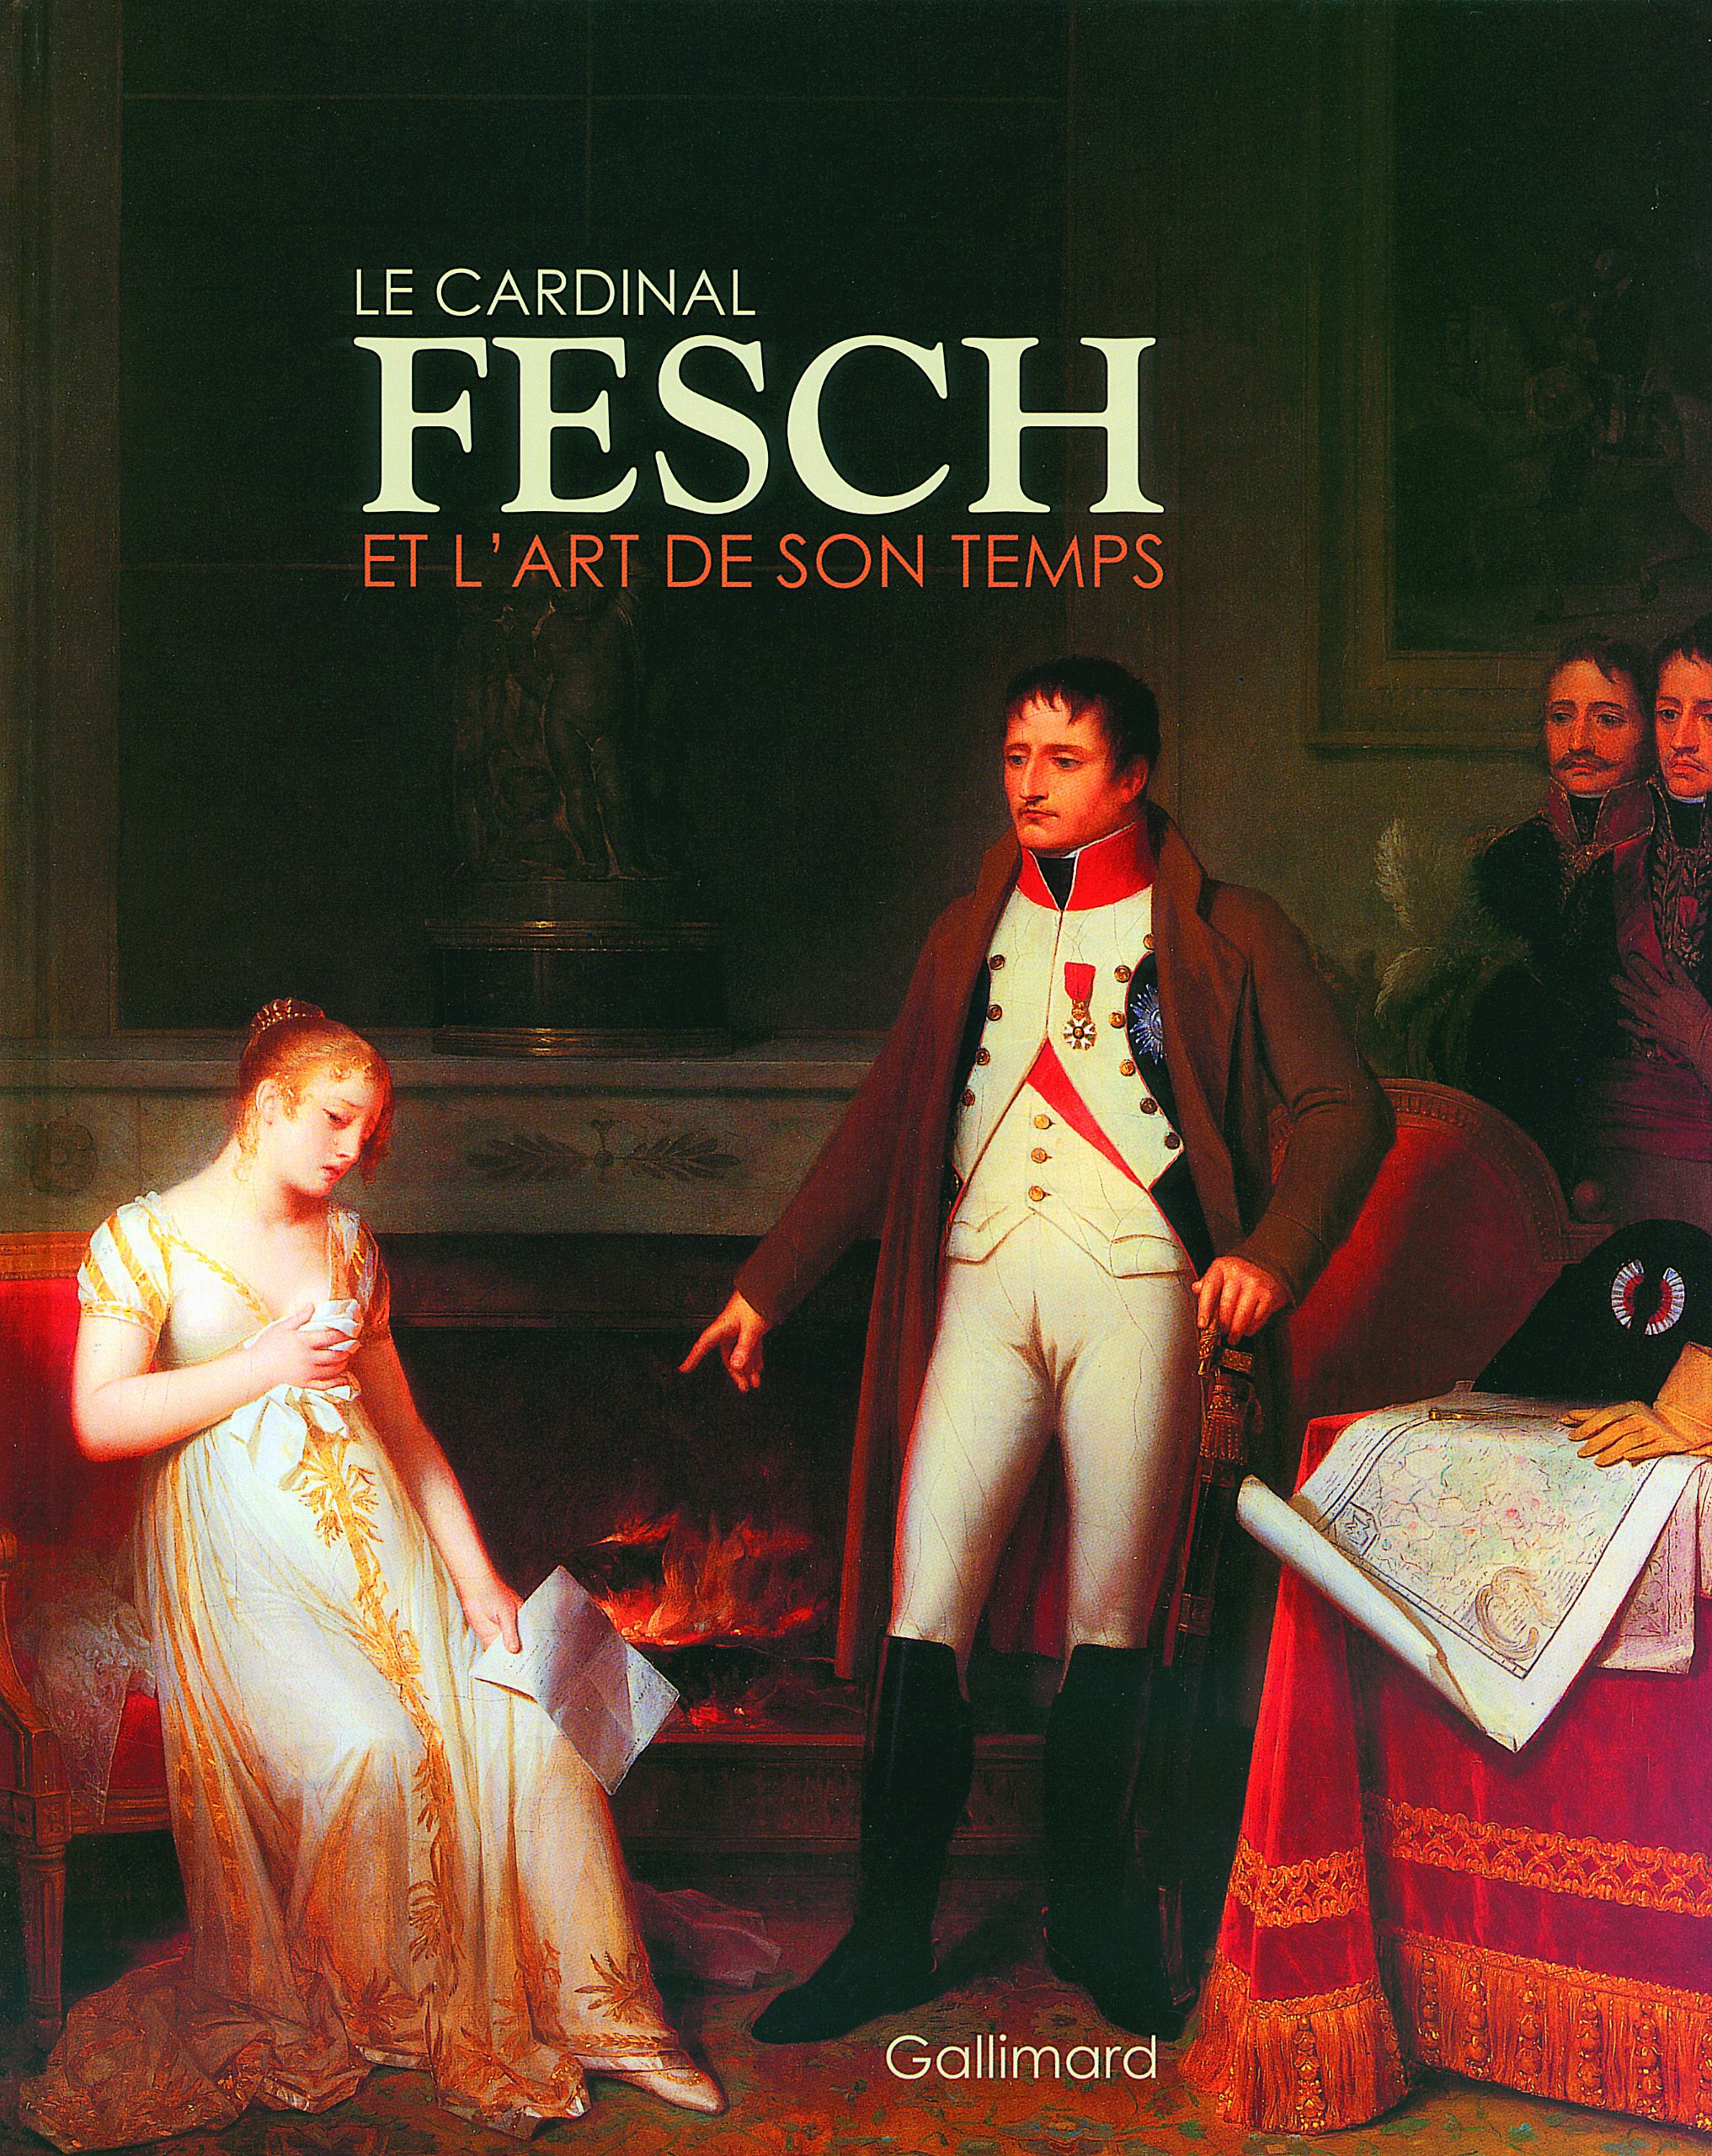 Le cardinal Fesch et l'art de son temps: Fragonard, Marguerite Gérard, Jacques Sablet, Louis-Leopold Boilly... (French Edition) pdf